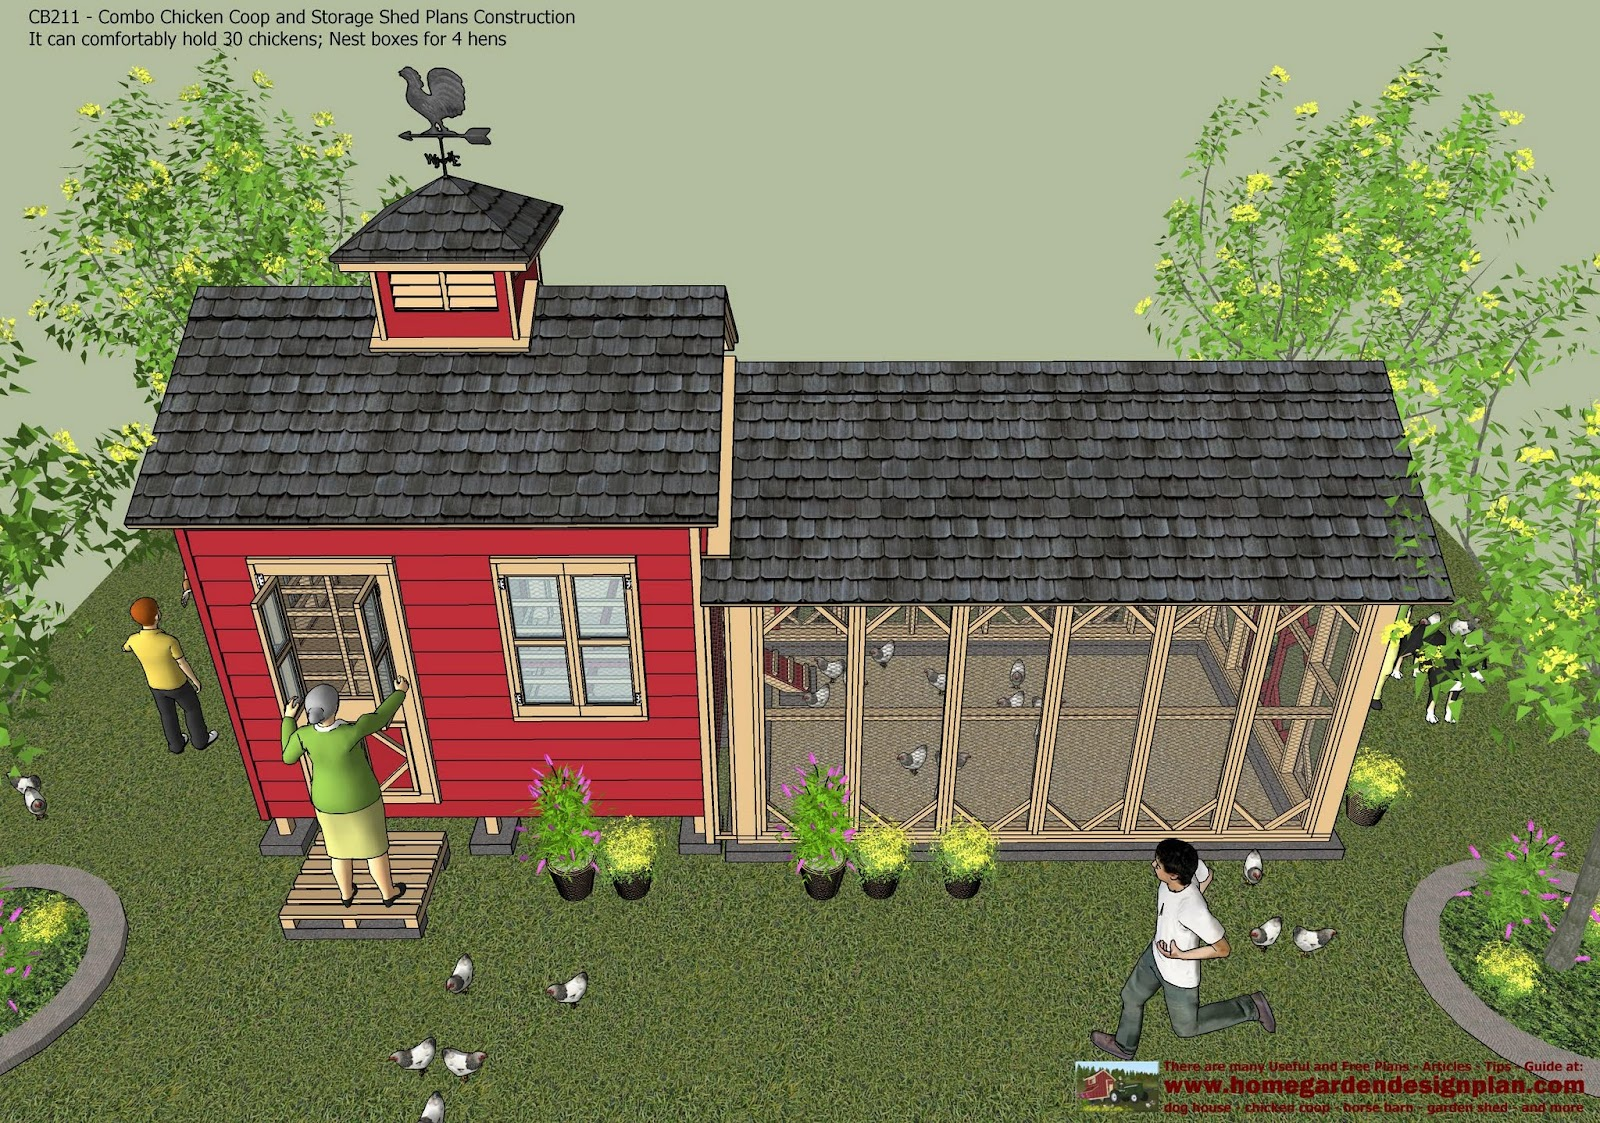 Home Garden Plans CB211 Combo Chicken Coop Shed